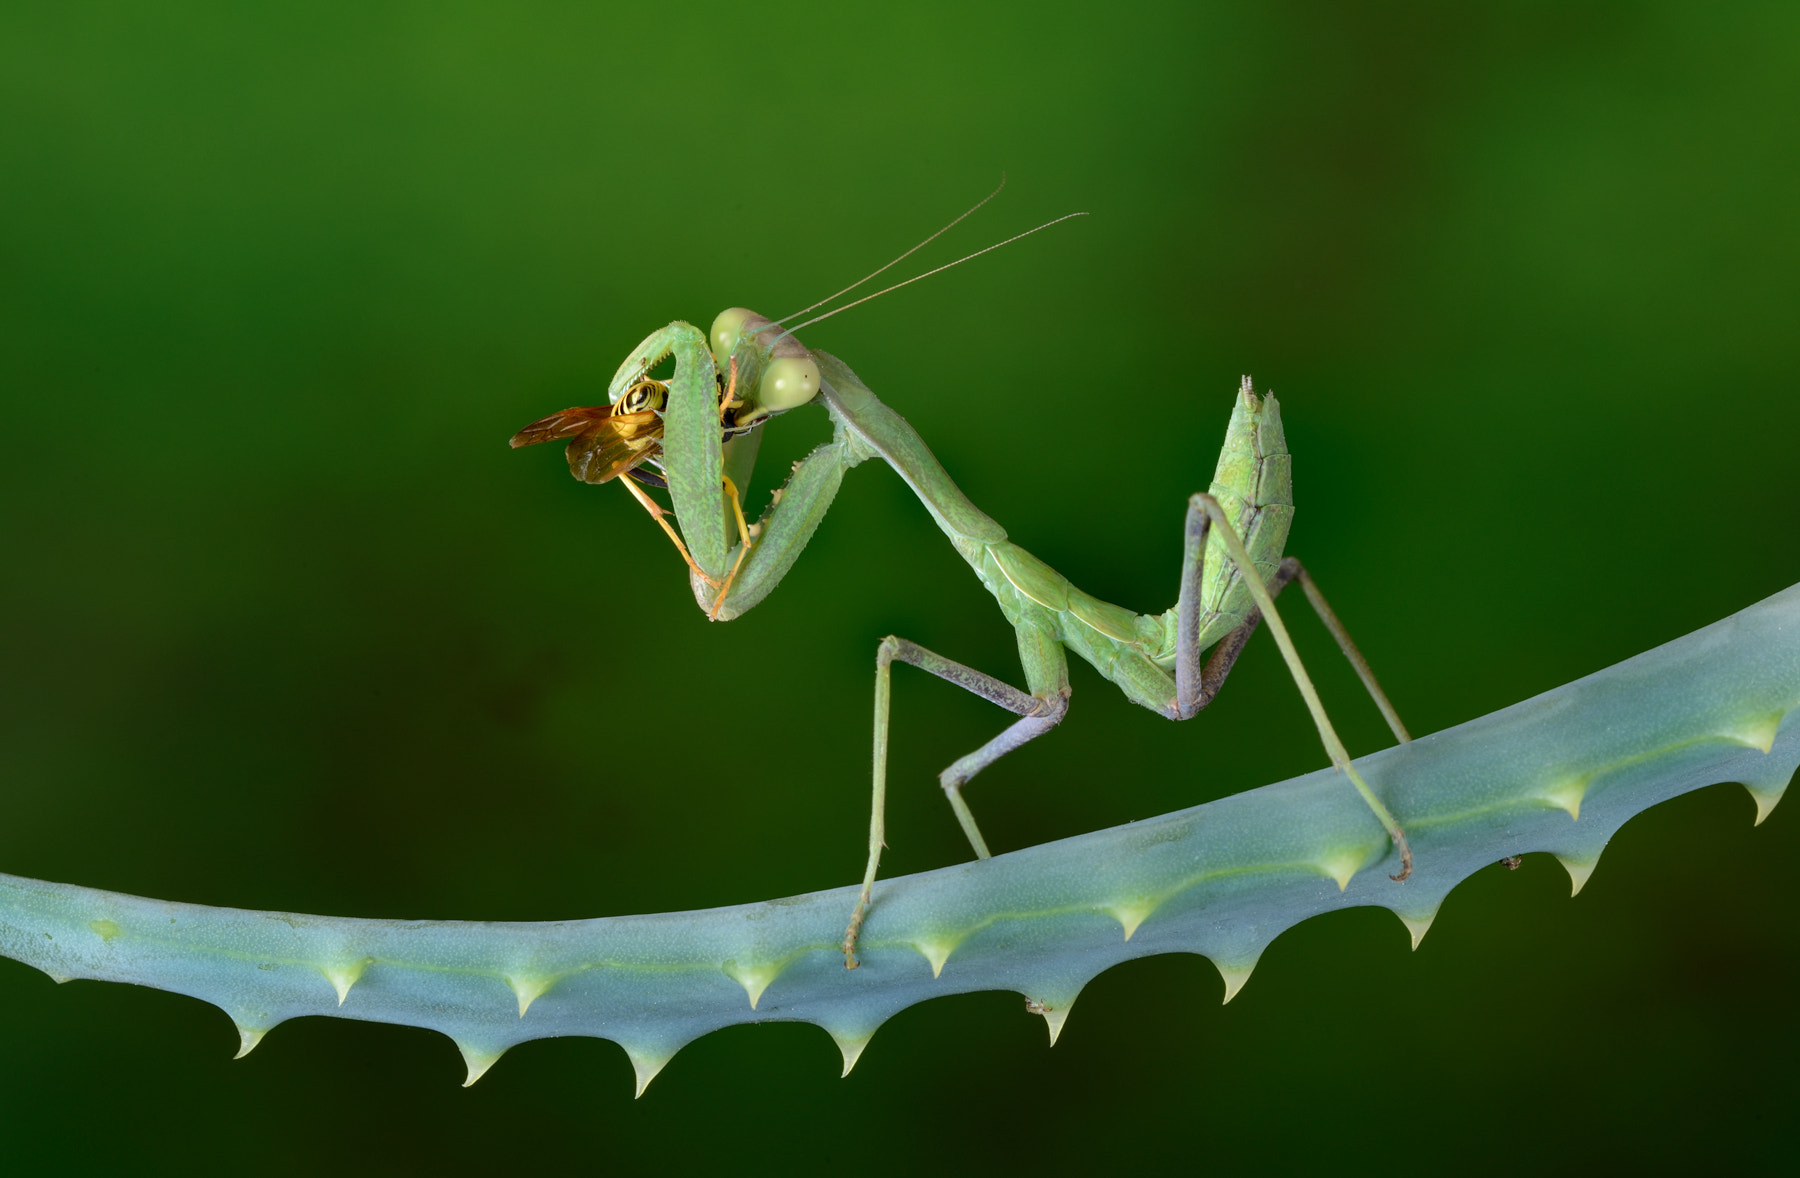 Photograph Mantis with pray by Charles Charalambous on 500px